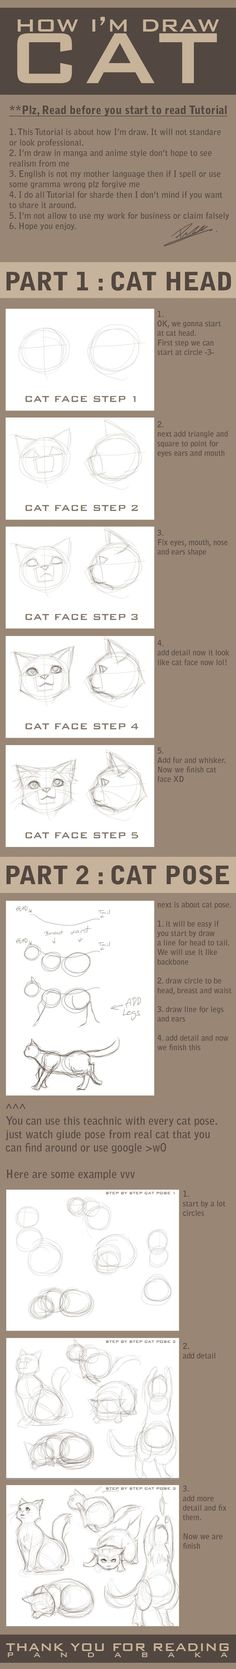 how I am draw cat by pandabaka on deviantART - these things help for a lot of things, take note and just leave it till you need it! - Picmia